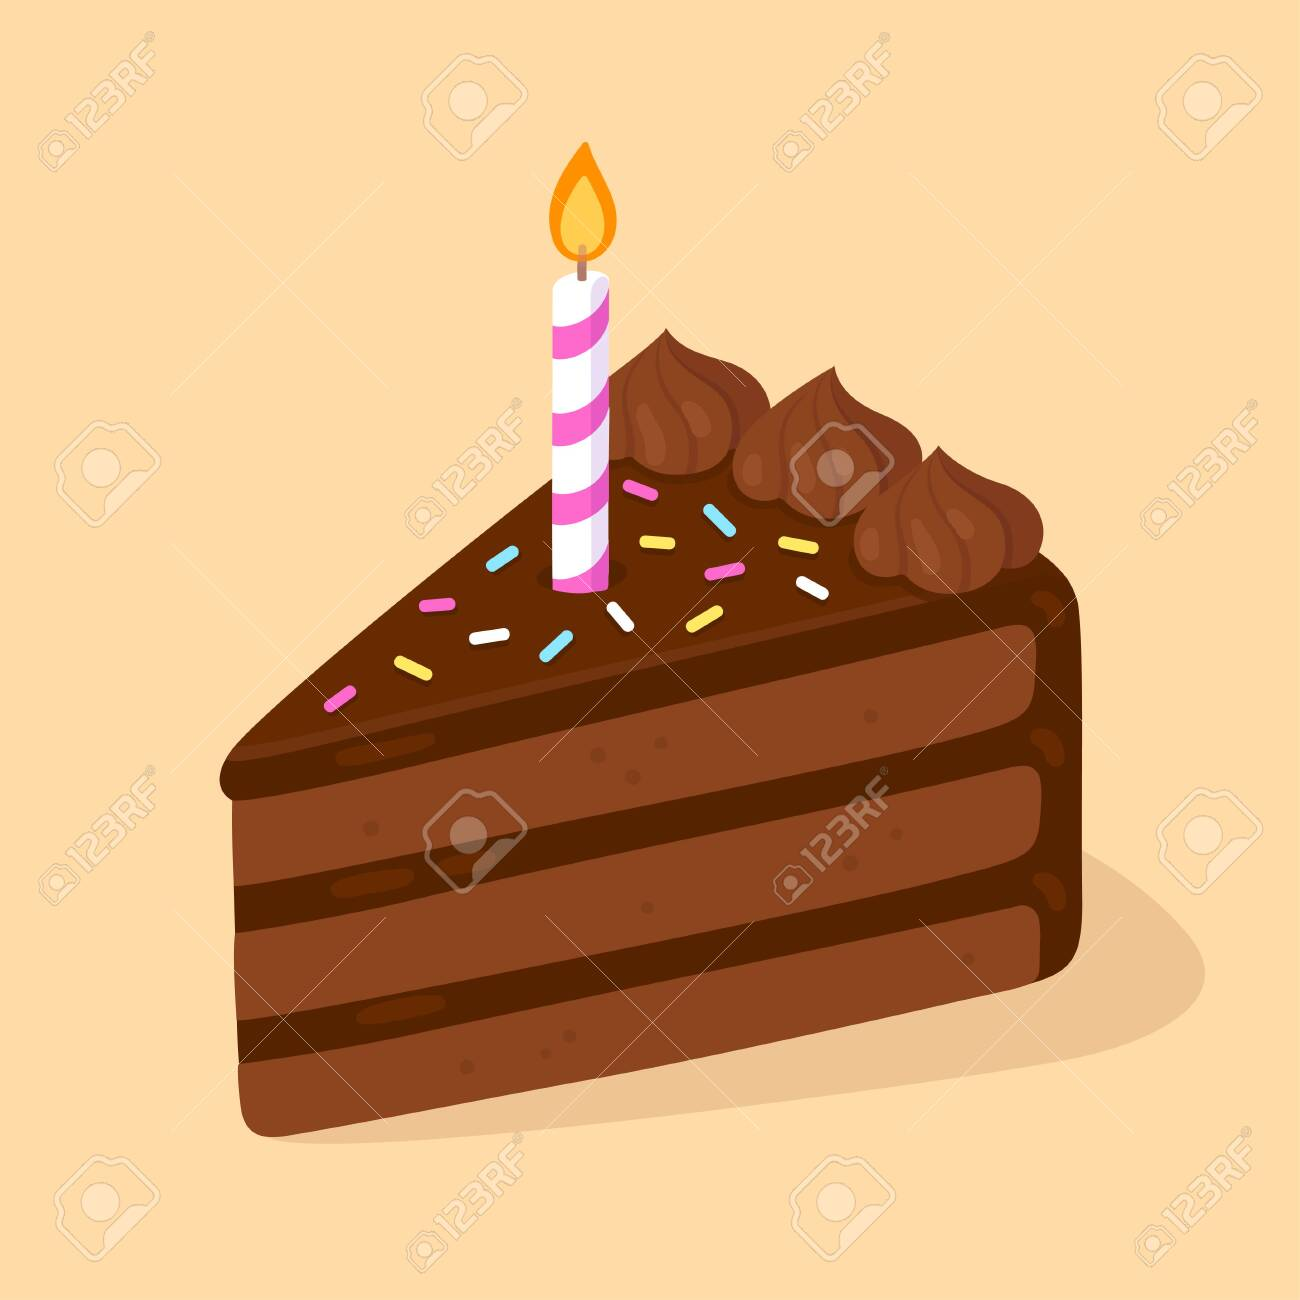 Slice Of Chocolate Birthday Cake With Candle Happy Birthday Royalty Free Cliparts Vectors And Stock Illustration Image 134573914